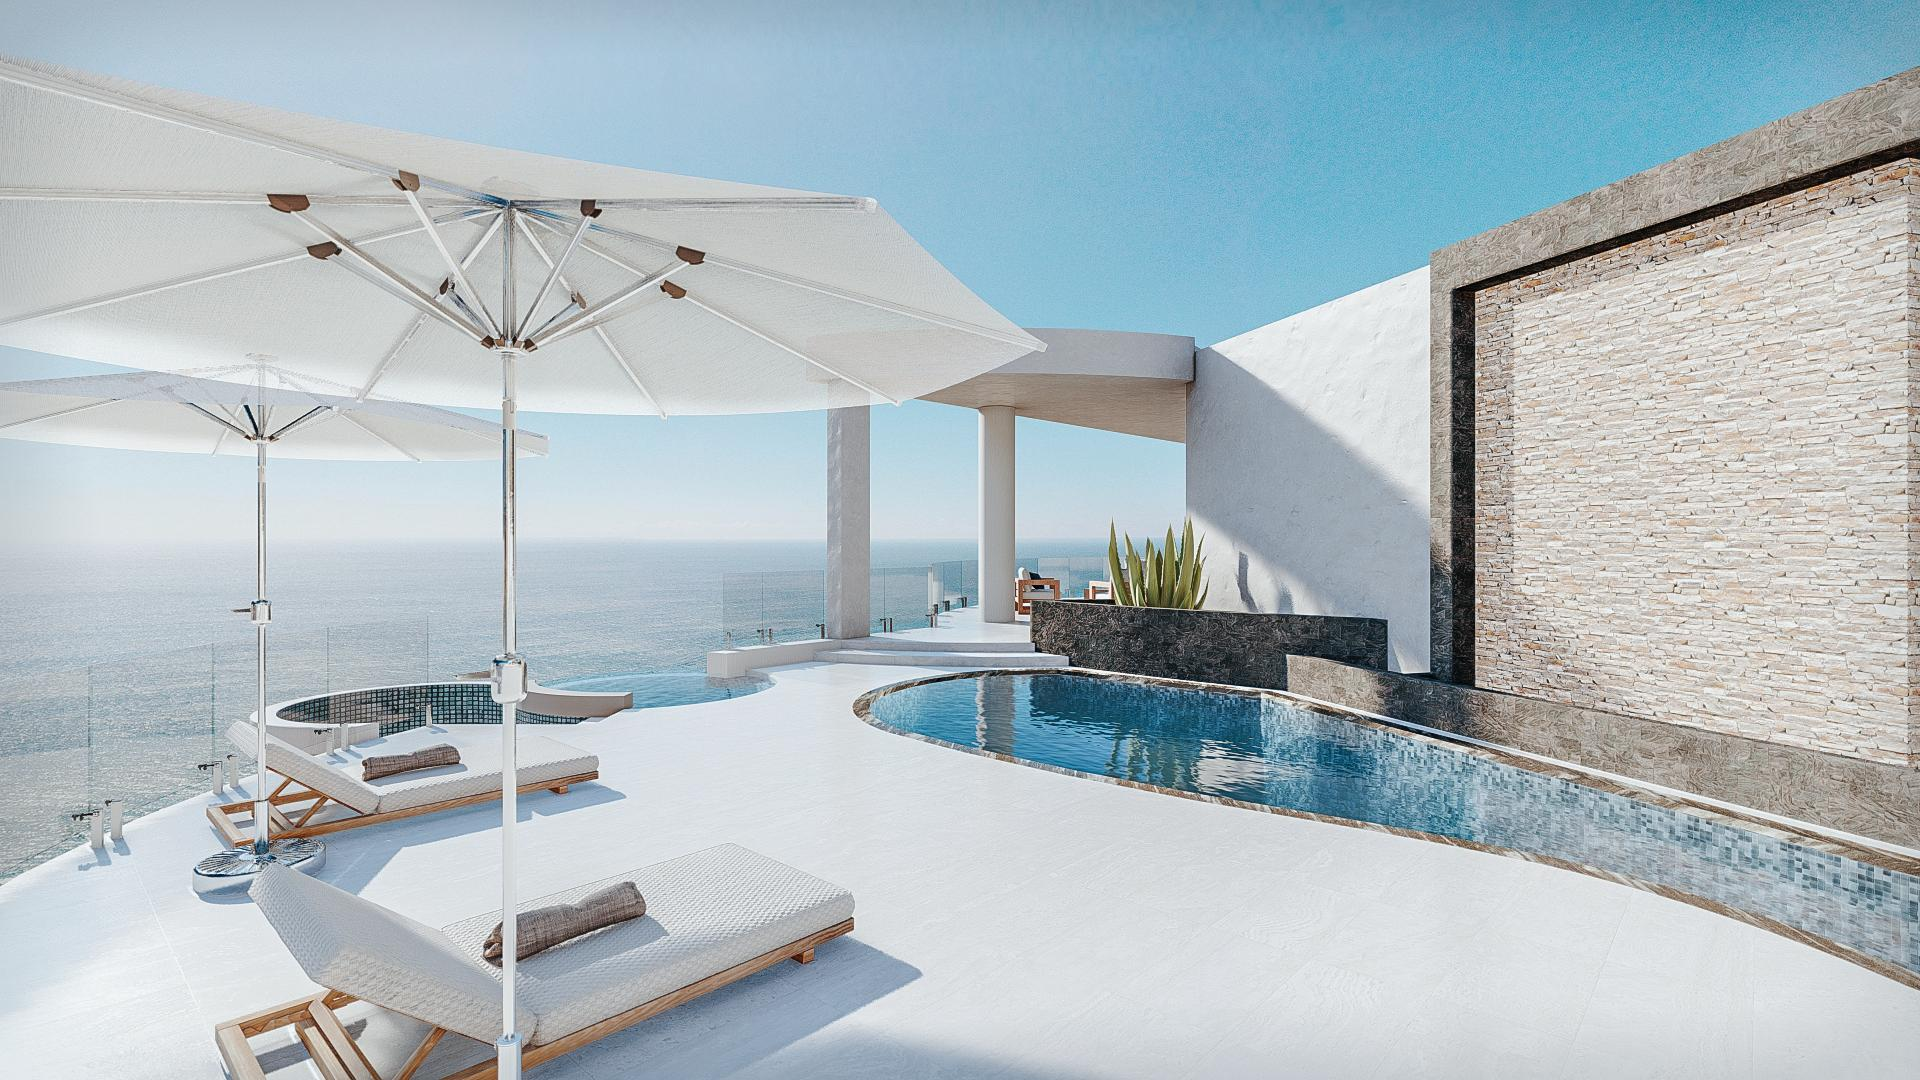 **First 27 photos are proposed renderings and last 25 photos actual photos. Casa Vista Alegria is a one of a kind southern oceanfront hillside retreat with breathtaking 180-degreepanoramic views of the Pacific Ocean. The contemporary design style shines in the original luxury gated community of Pedregal. This perfect floor-plan has separate living and working spaces. The detached guest tower offers 2 guest suites with private amenities such as jacuzzi and BBQ area. The home comes with a luxurious master suite, impressive views from entertaining areas, and an incredible gourmet kitchen. The proposed remodel is for a 5 bedroom estate. Price corresponds to current property conditions